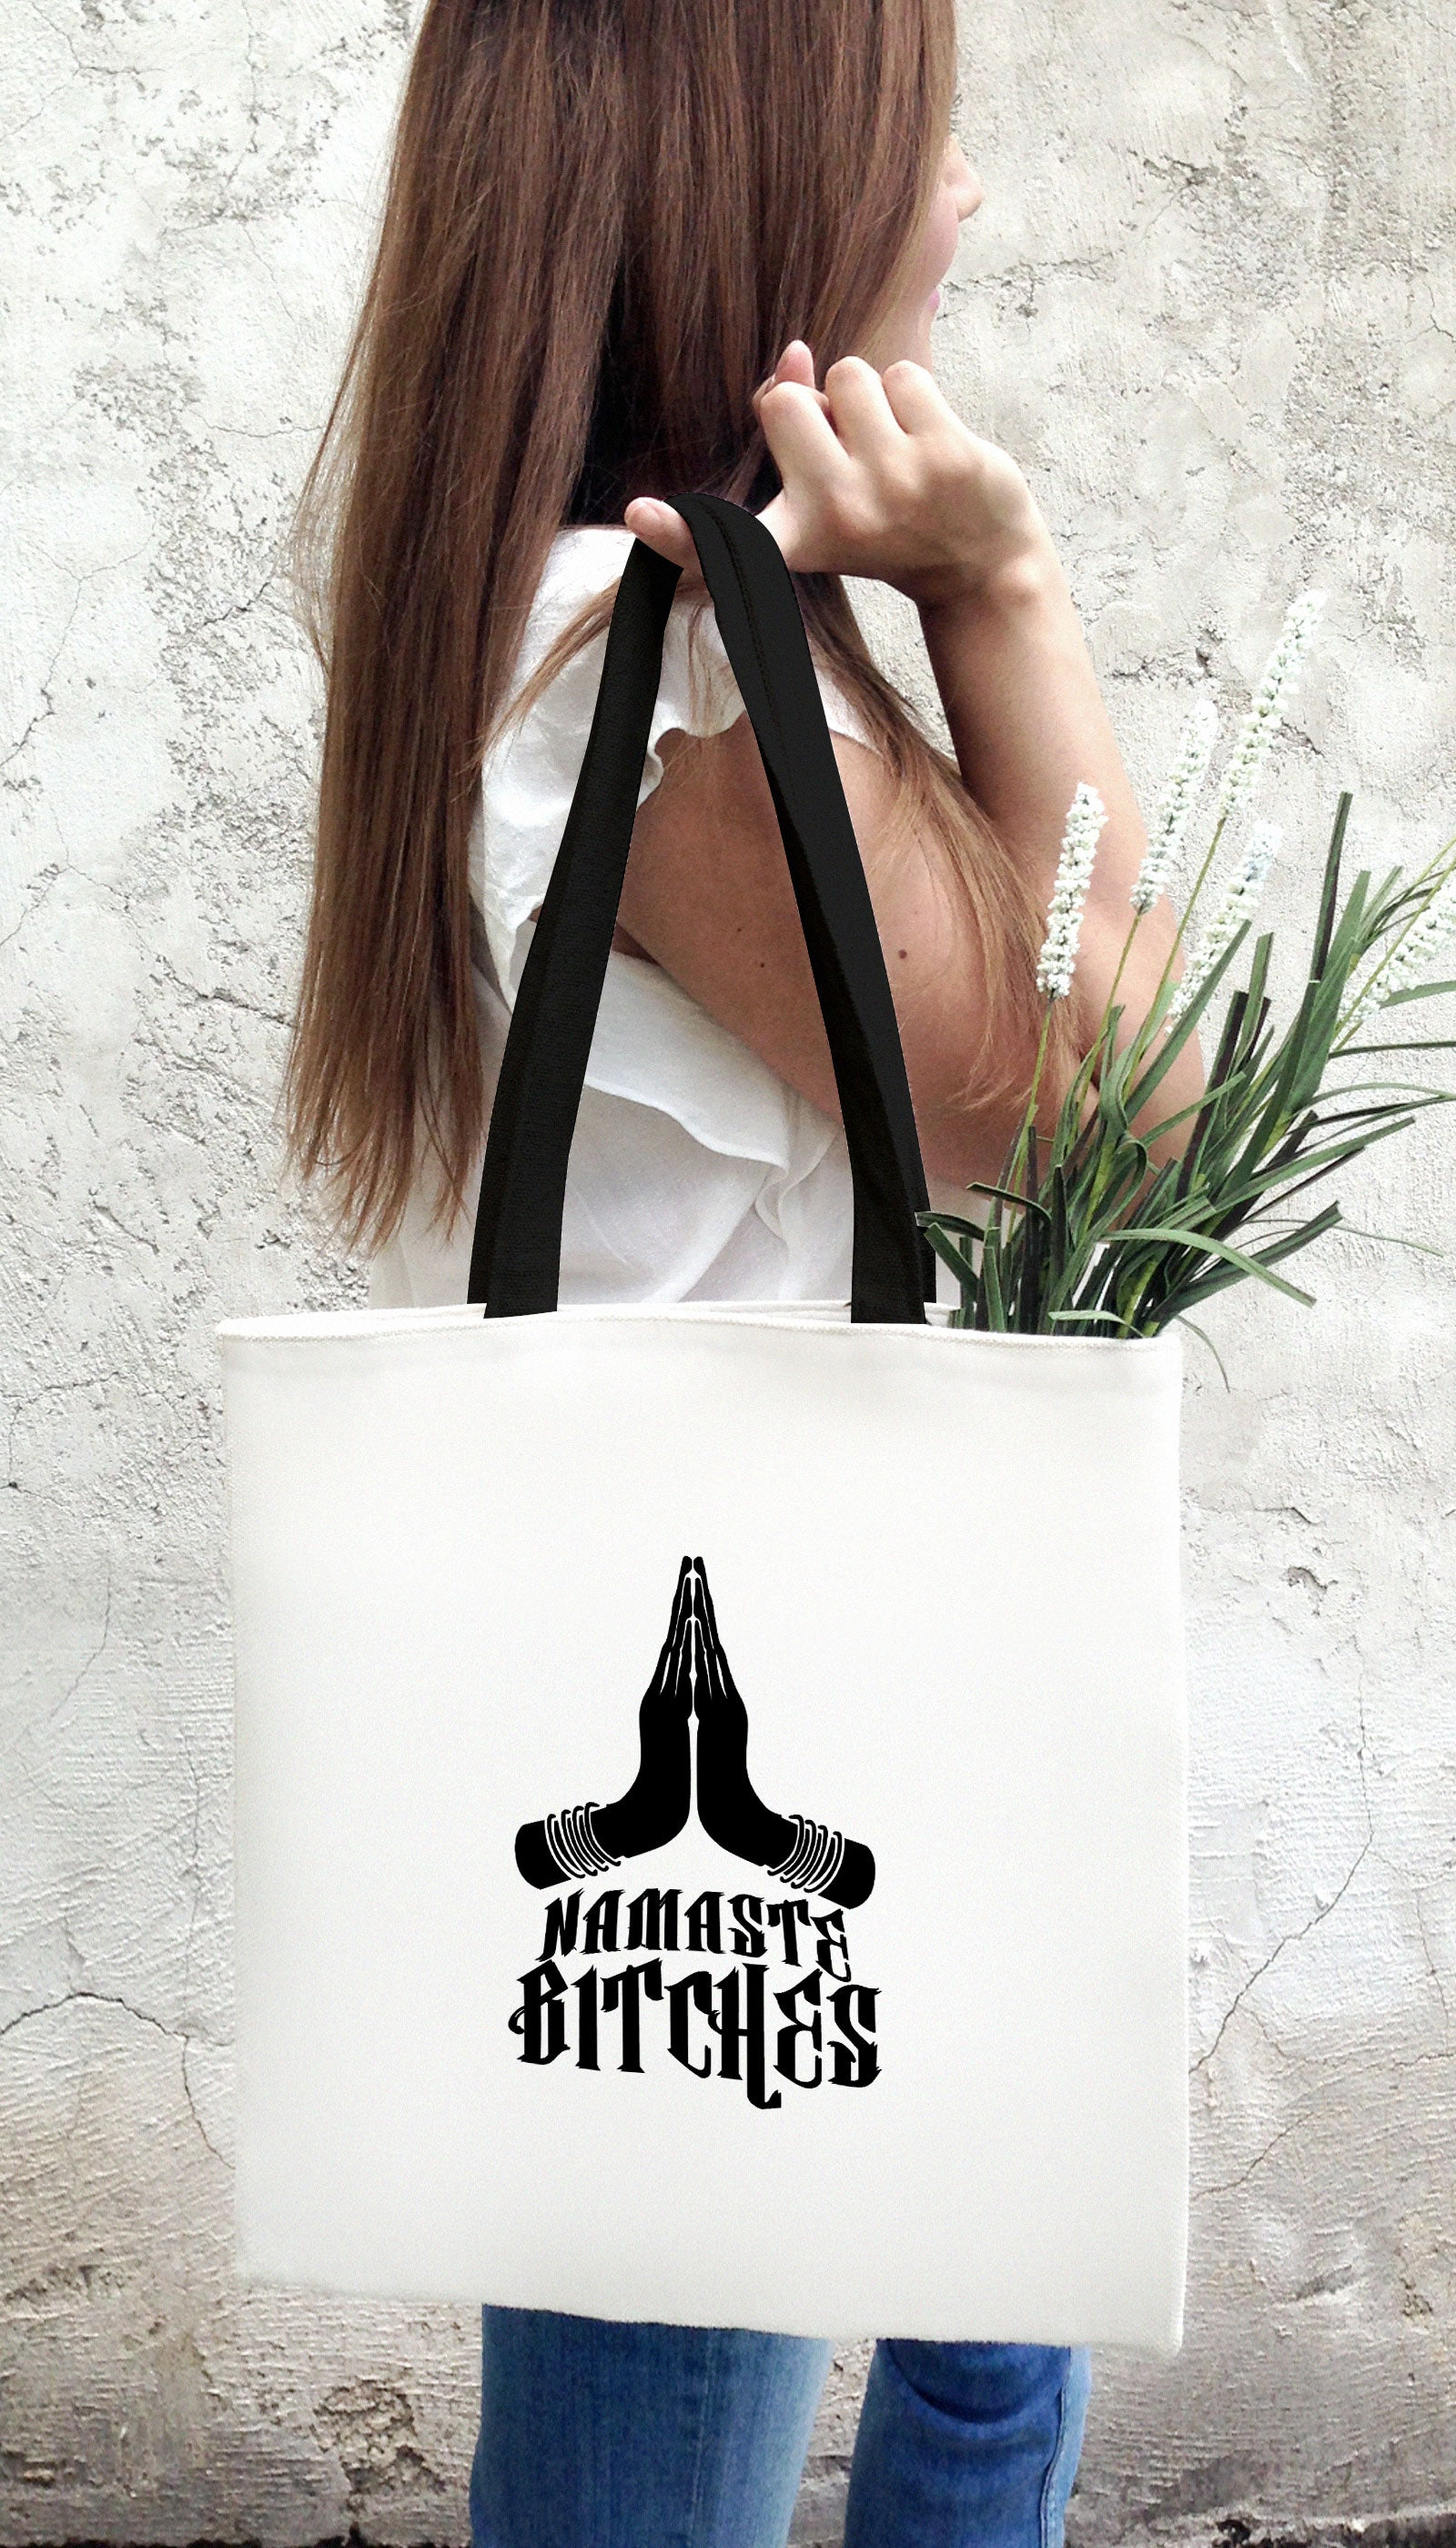 Namaste Bitches Funny & Clever Tote Bag Gift | Sarcastic ME